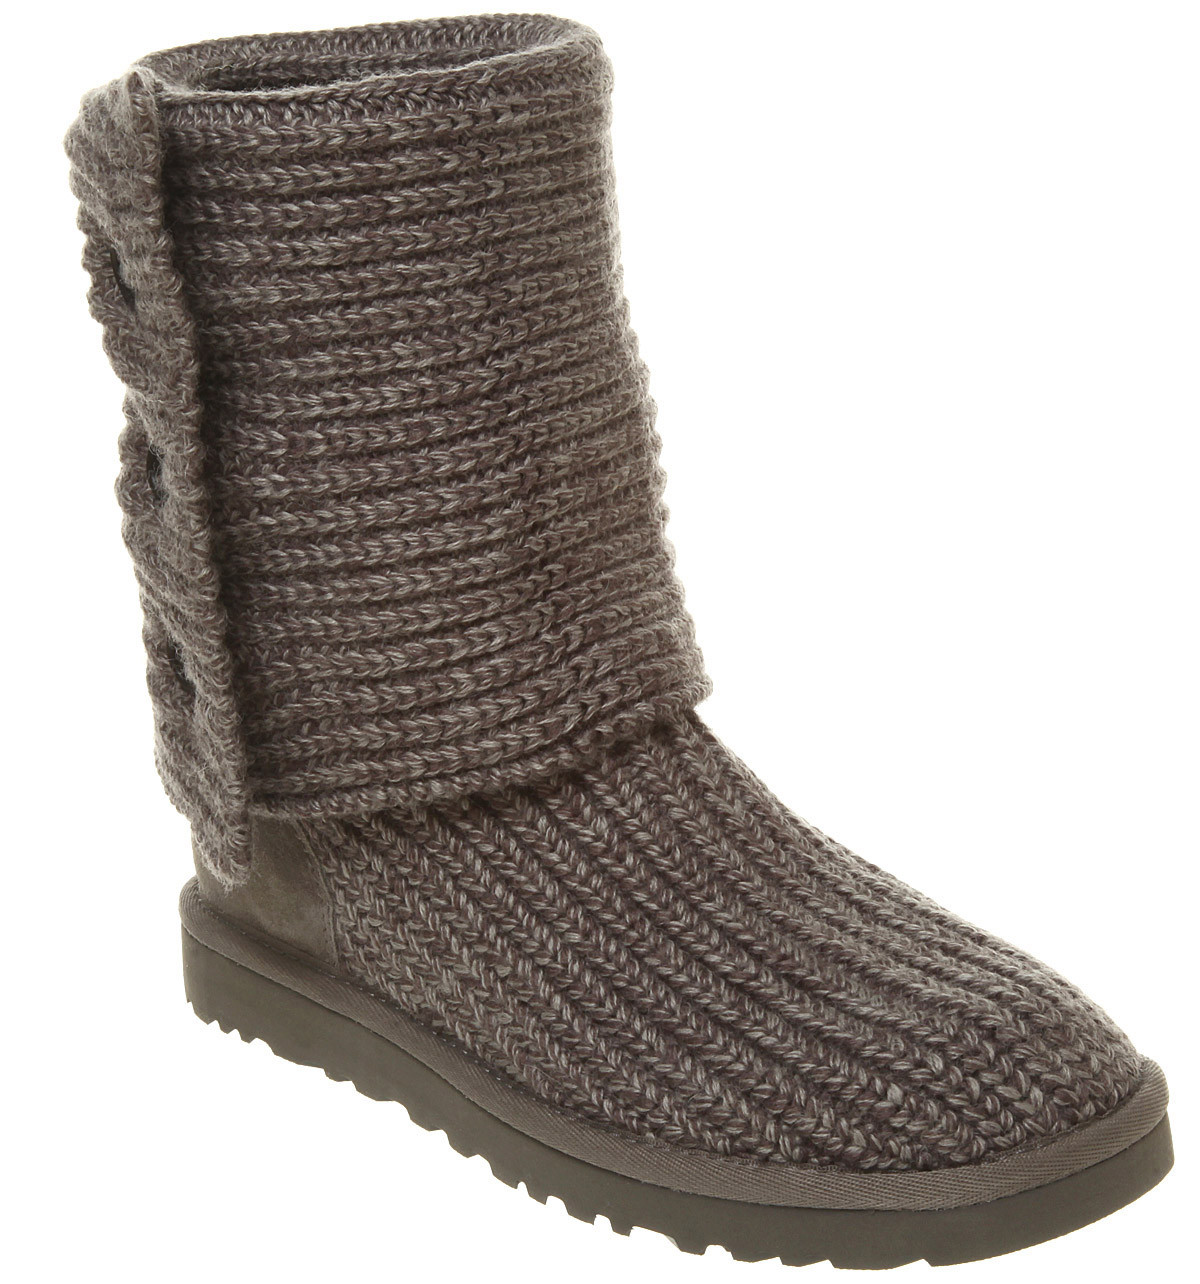 Fresh Ideas On How to Wear Knitted Boots Fashionarrow Crochet Ugg Boots Of Beautiful 42 Ideas Crochet Ugg Boots